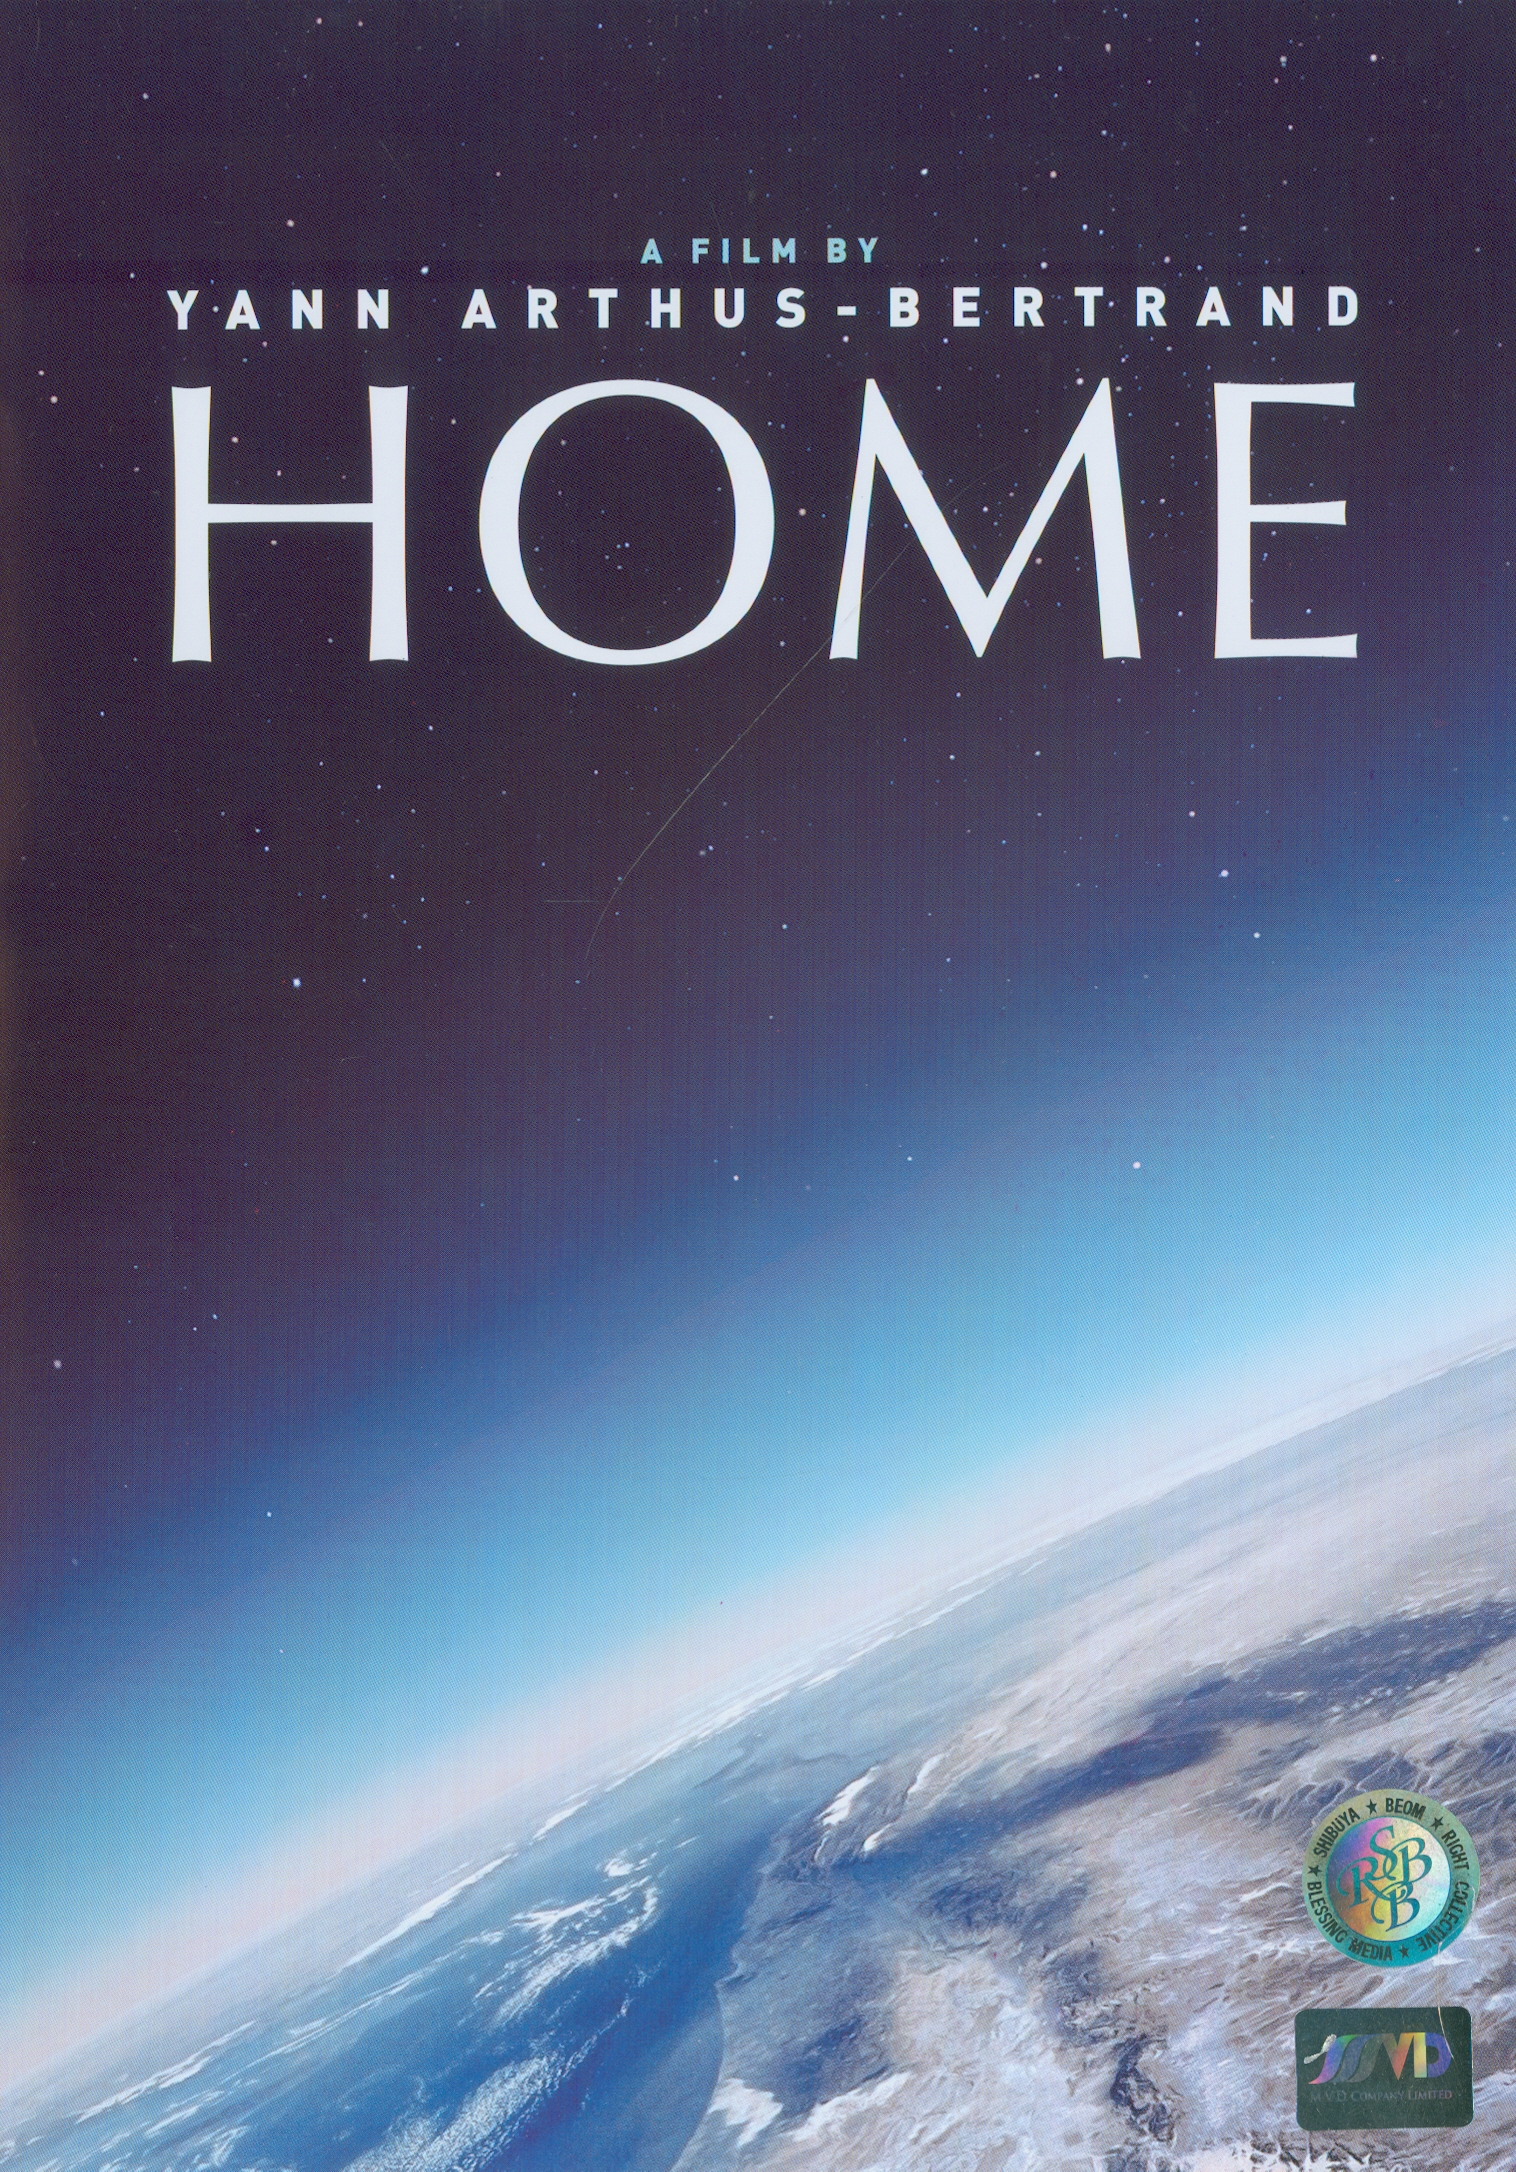 Home[videorecording] /PPR presents ; screenplay by Isabelle Delannoy, Tewfik Fares, Yann Arthus-Bertrand, Denis Carot, Yen Le Van ; produced by Denis Carot and Luc Besson ; directed by Yann Arthus-Bertrand||โฮม เปิดหน้าต่างโลก